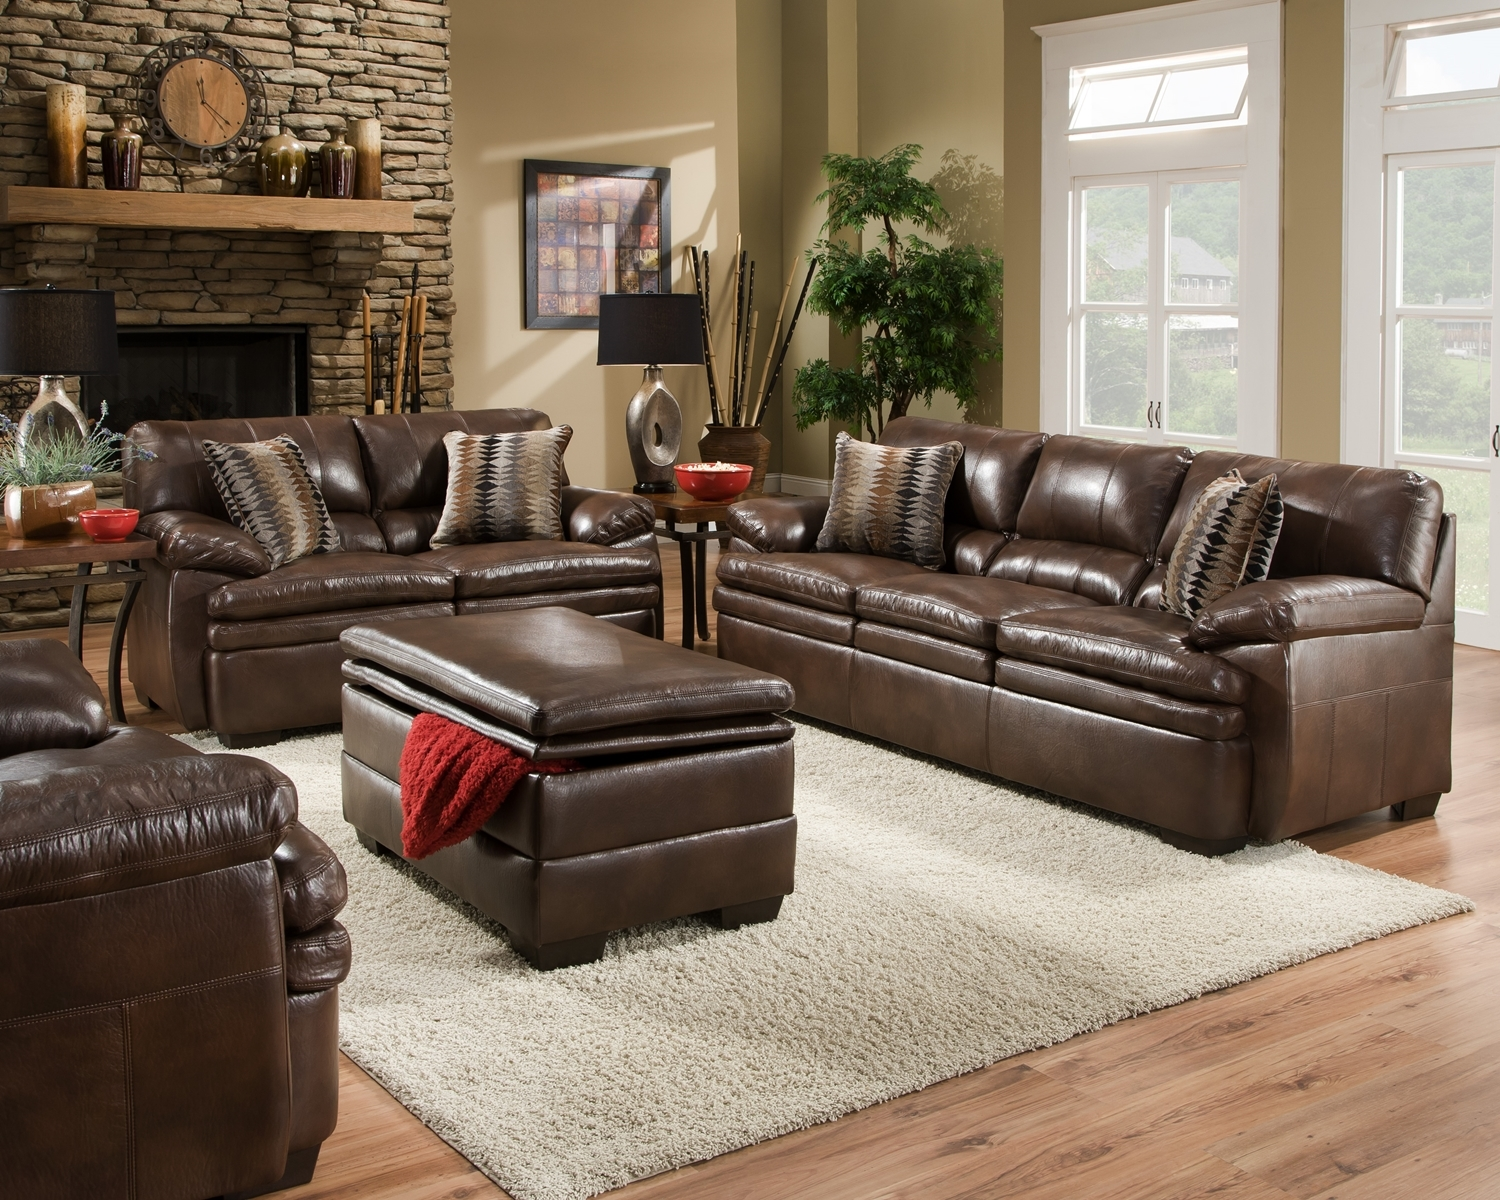 Brown bonded leather sofa set casual living room furniture for Living room ideas with leather furniture